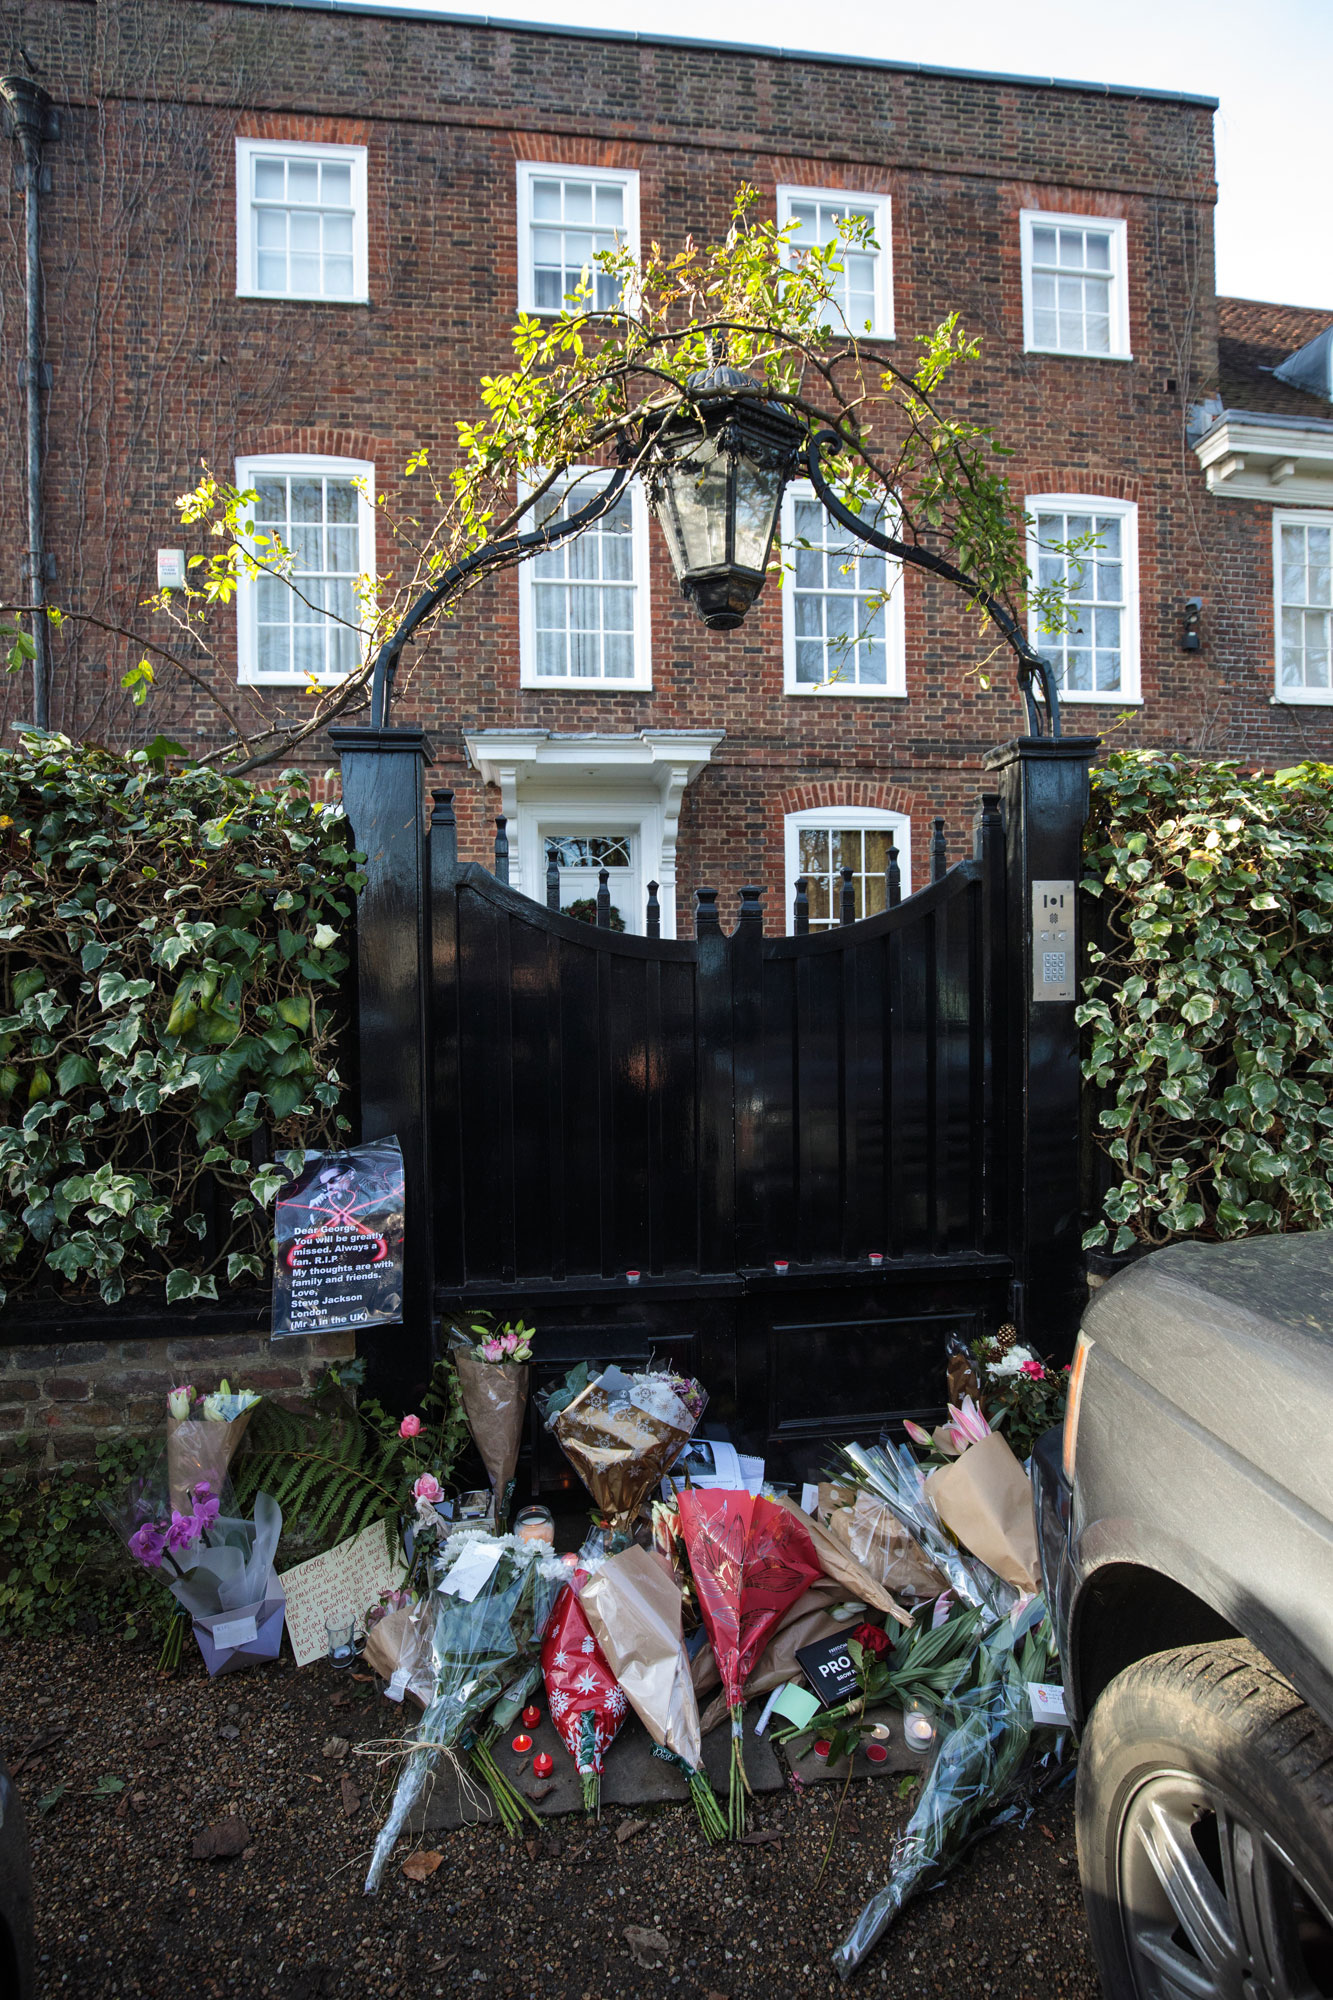 The gate is closed behind tributes of flowers left at the home of pop music icon George Michael in The Grove, Highgate on December 26, 2016 in London, England. Singer George Michael died on Christmas day in his country home in Oxfordshire at the age of 53 on December 25.